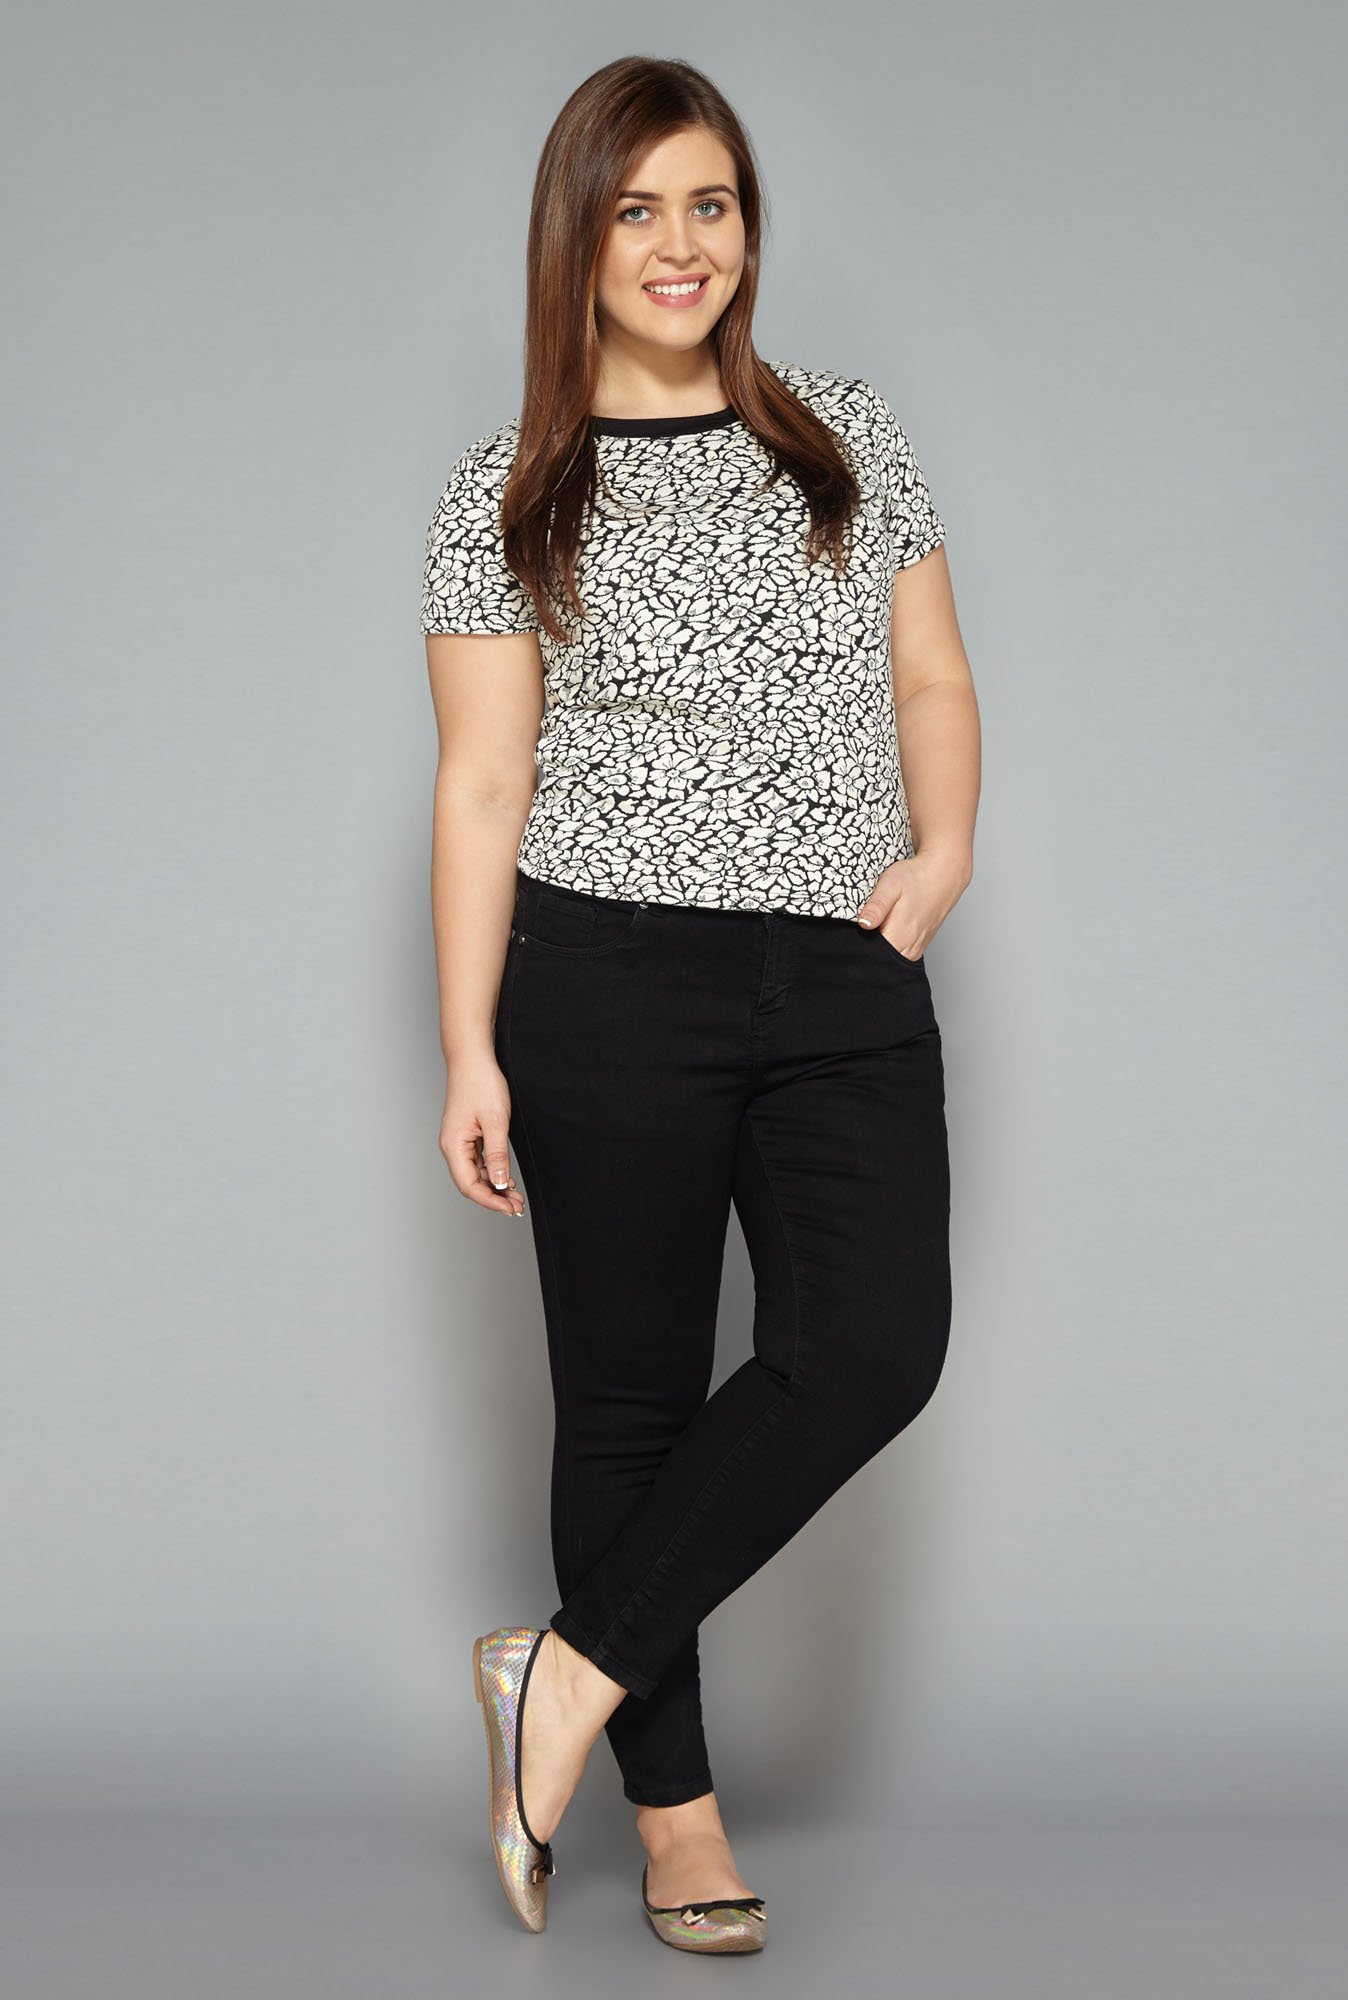 Sassy Soda Black Slim Fit Jeans